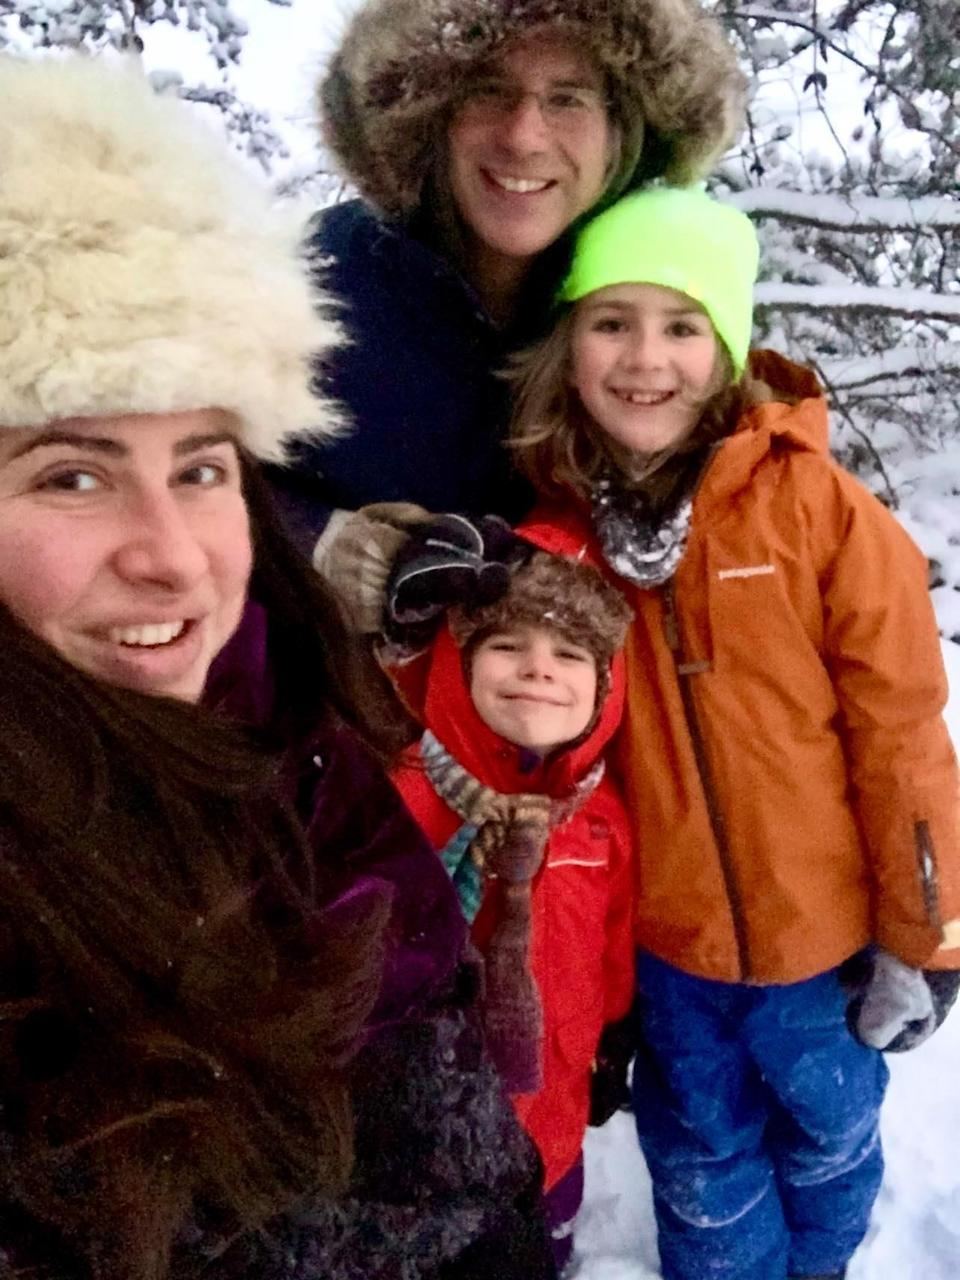 Carly Stasko, her husband Trevor, and their two kids pose outside. (Photo: Carly Stasko)